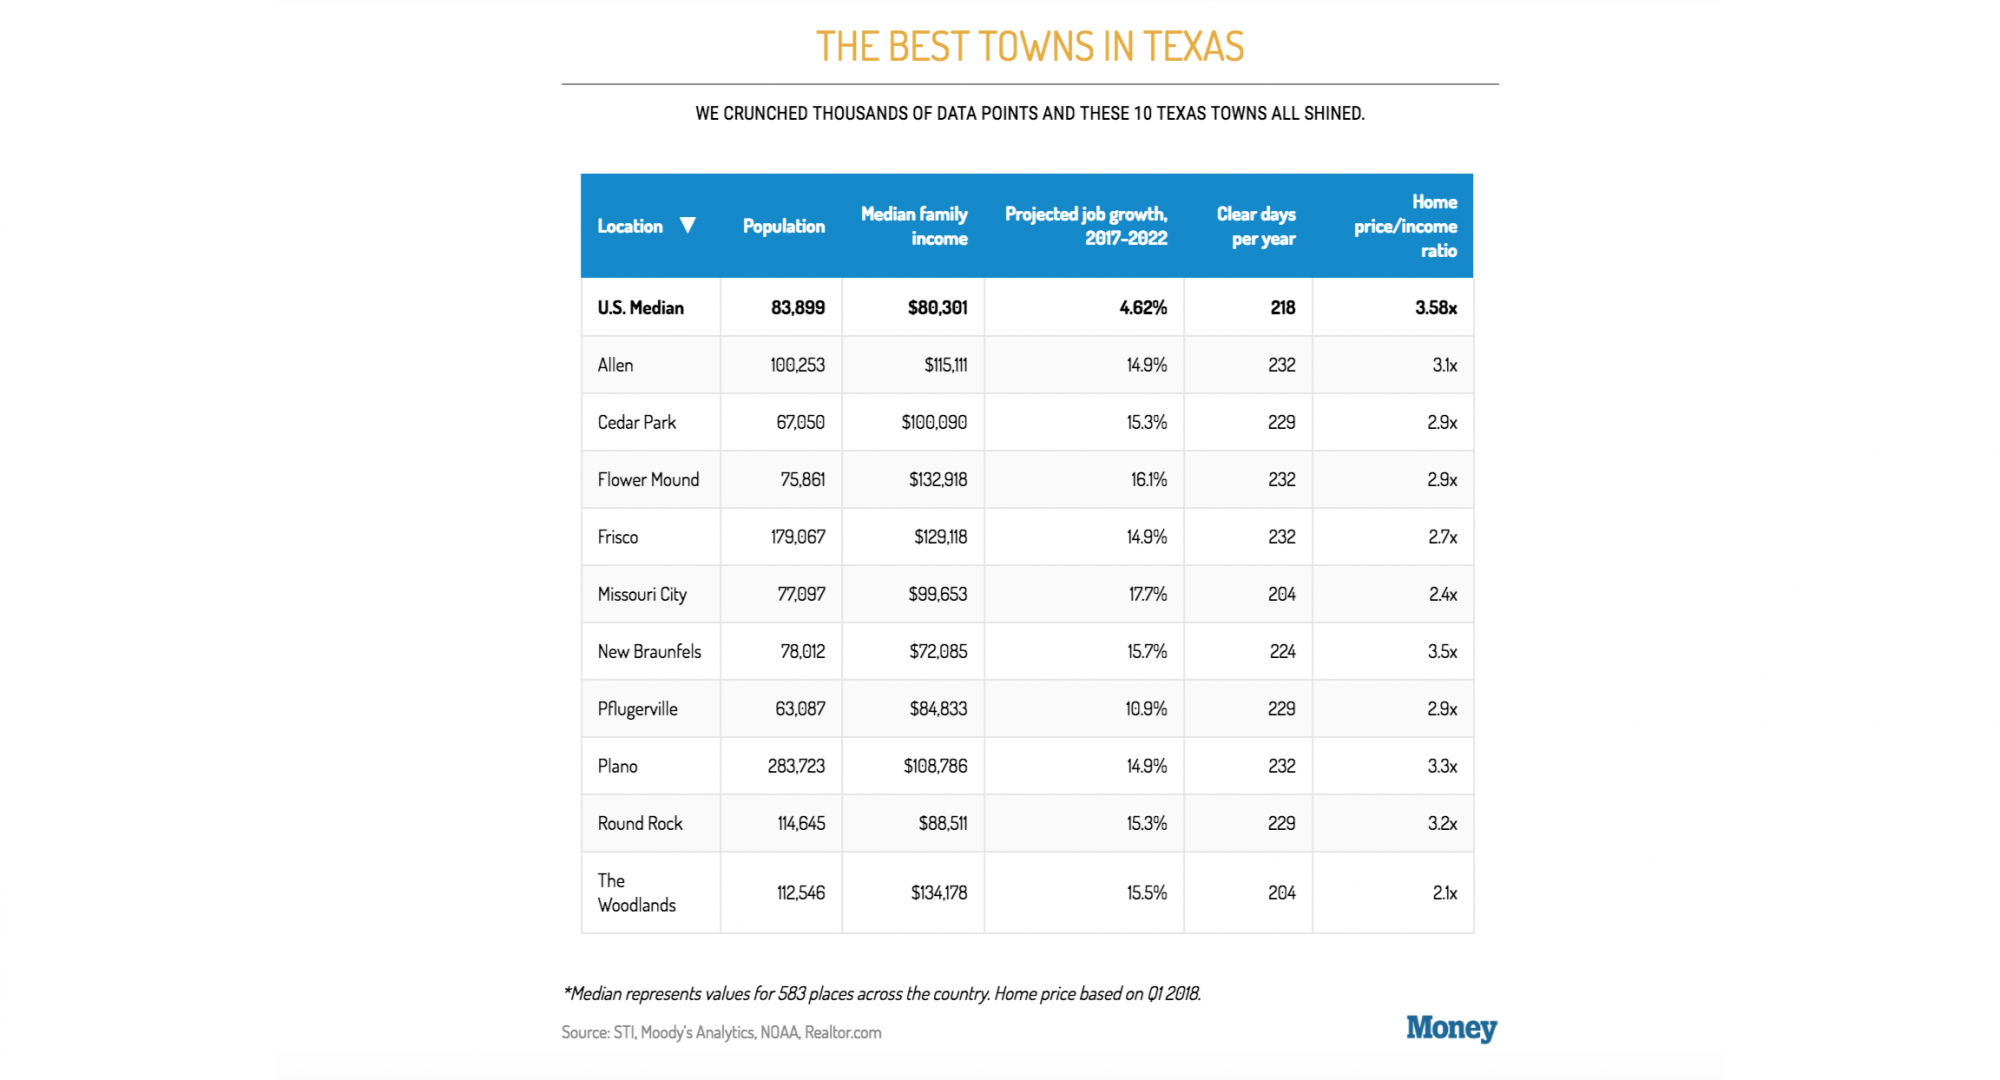 Best Towns in Texas